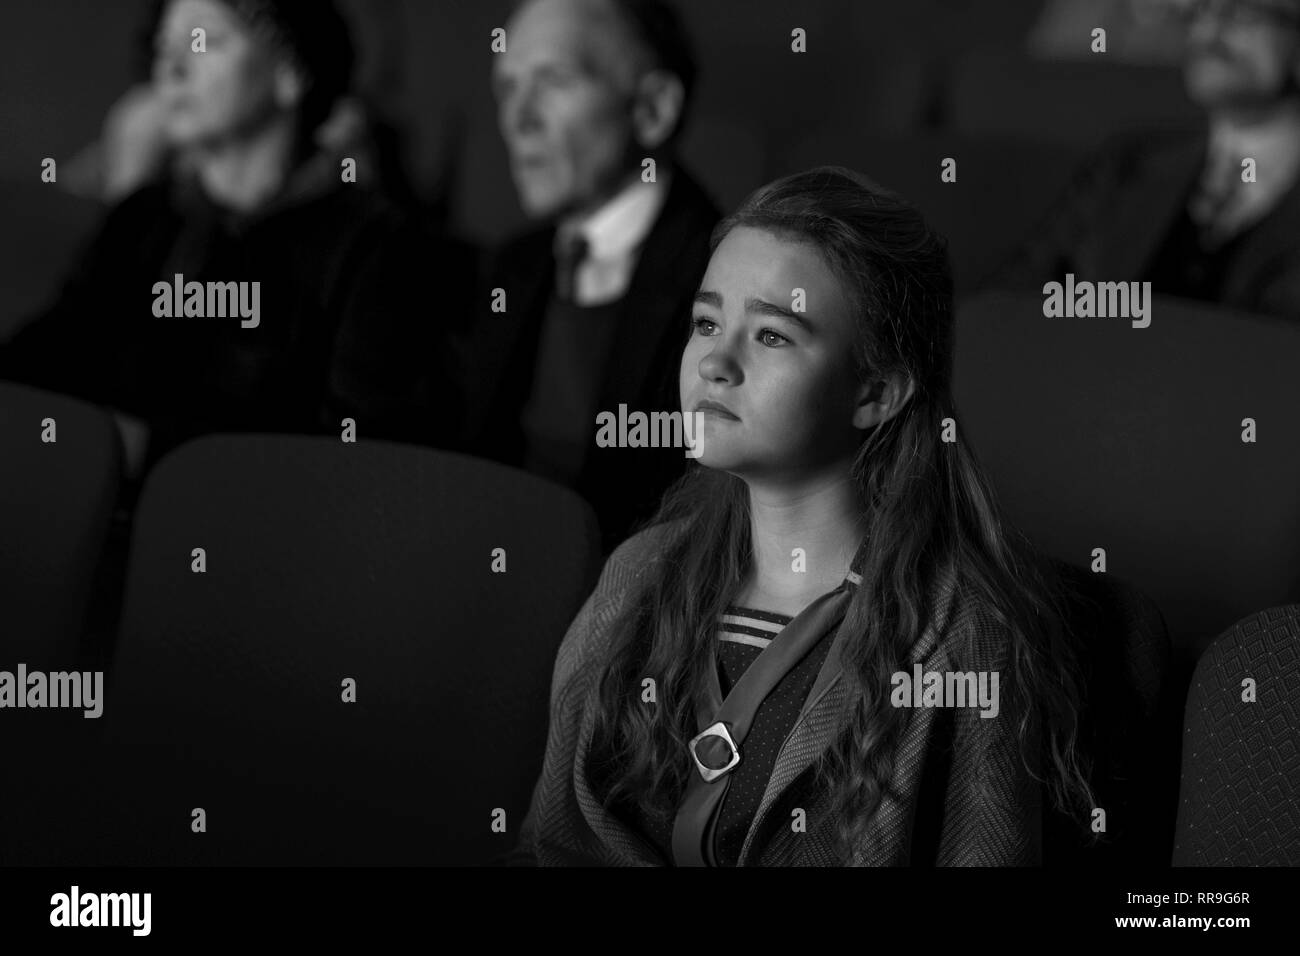 WONDERSTRUCK, MILLICENT SIMMONDS, 2017 - Stock Image